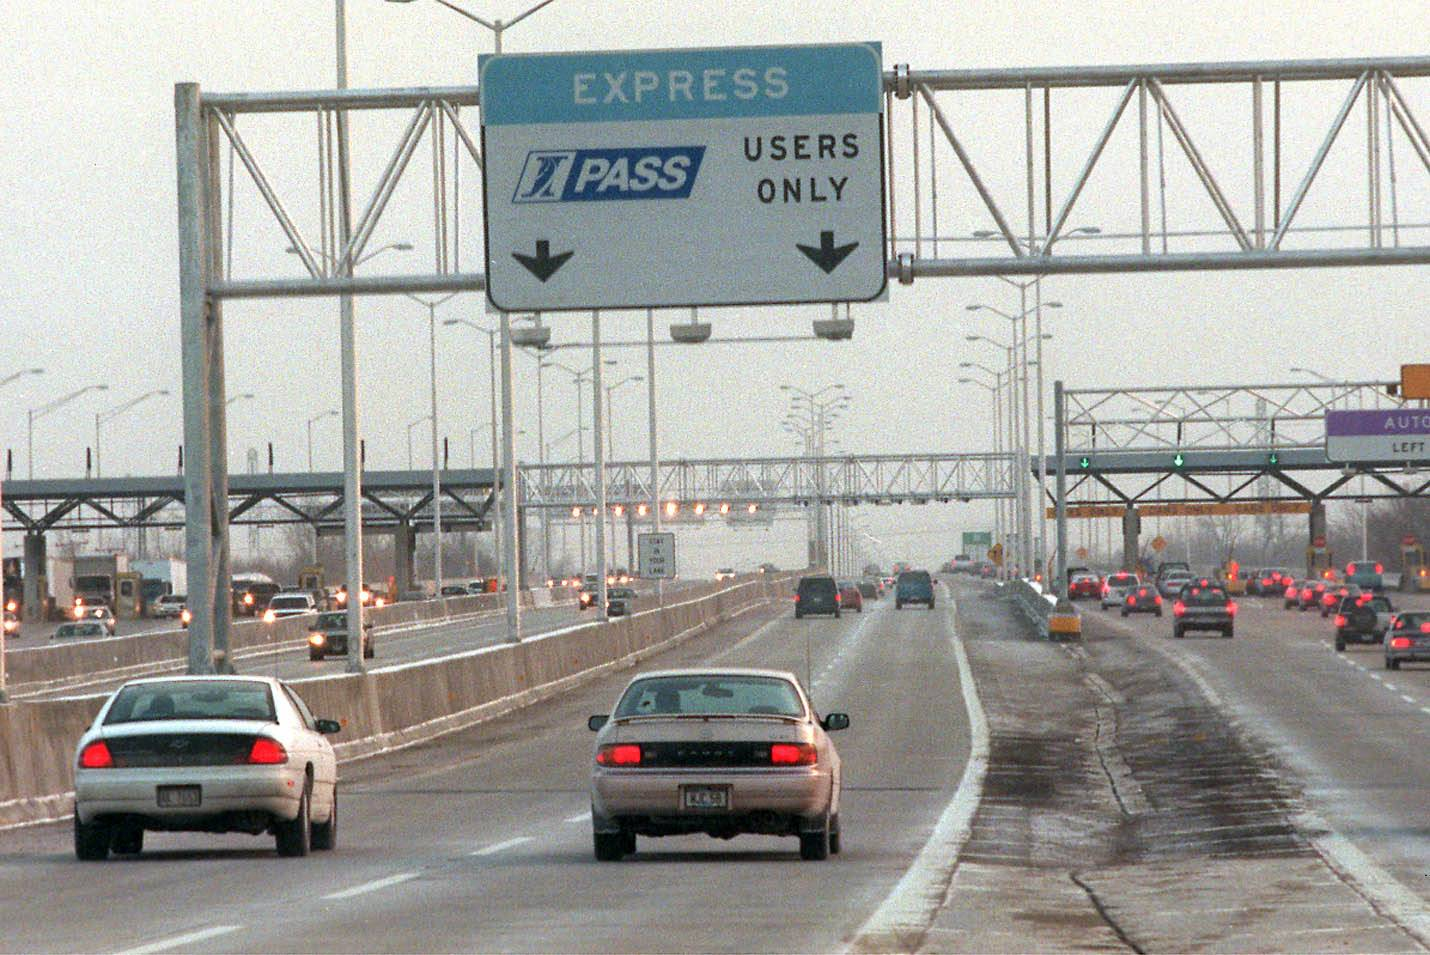 Not paying tolls could cost you more in the future